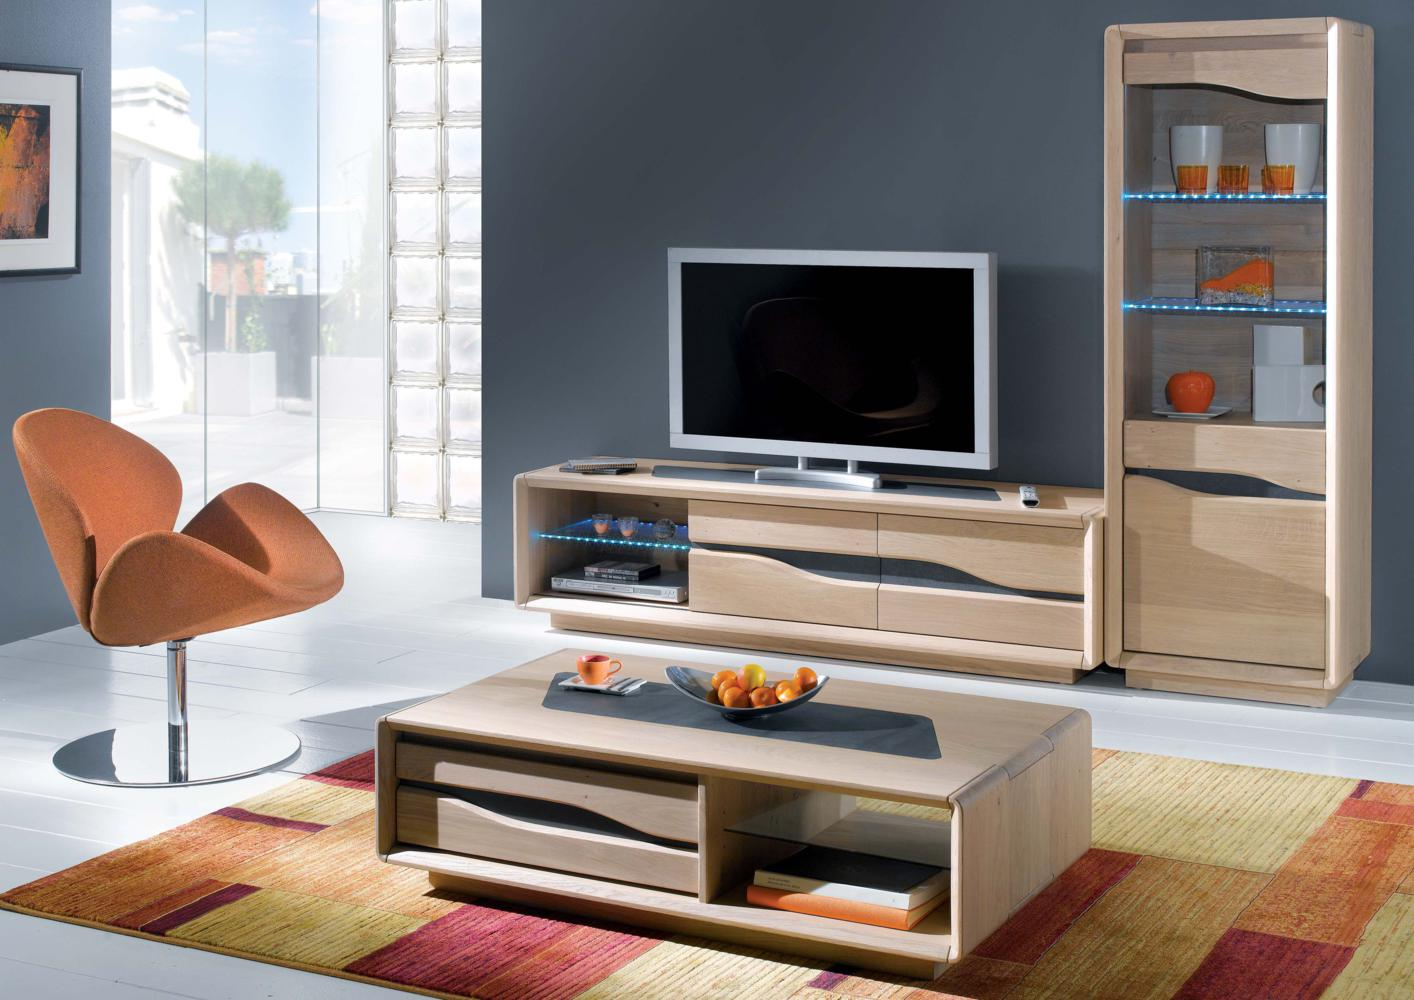 acheter votre meuble tv 122 cm 1 porte coulissante 1 niche chez simeuble. Black Bedroom Furniture Sets. Home Design Ideas